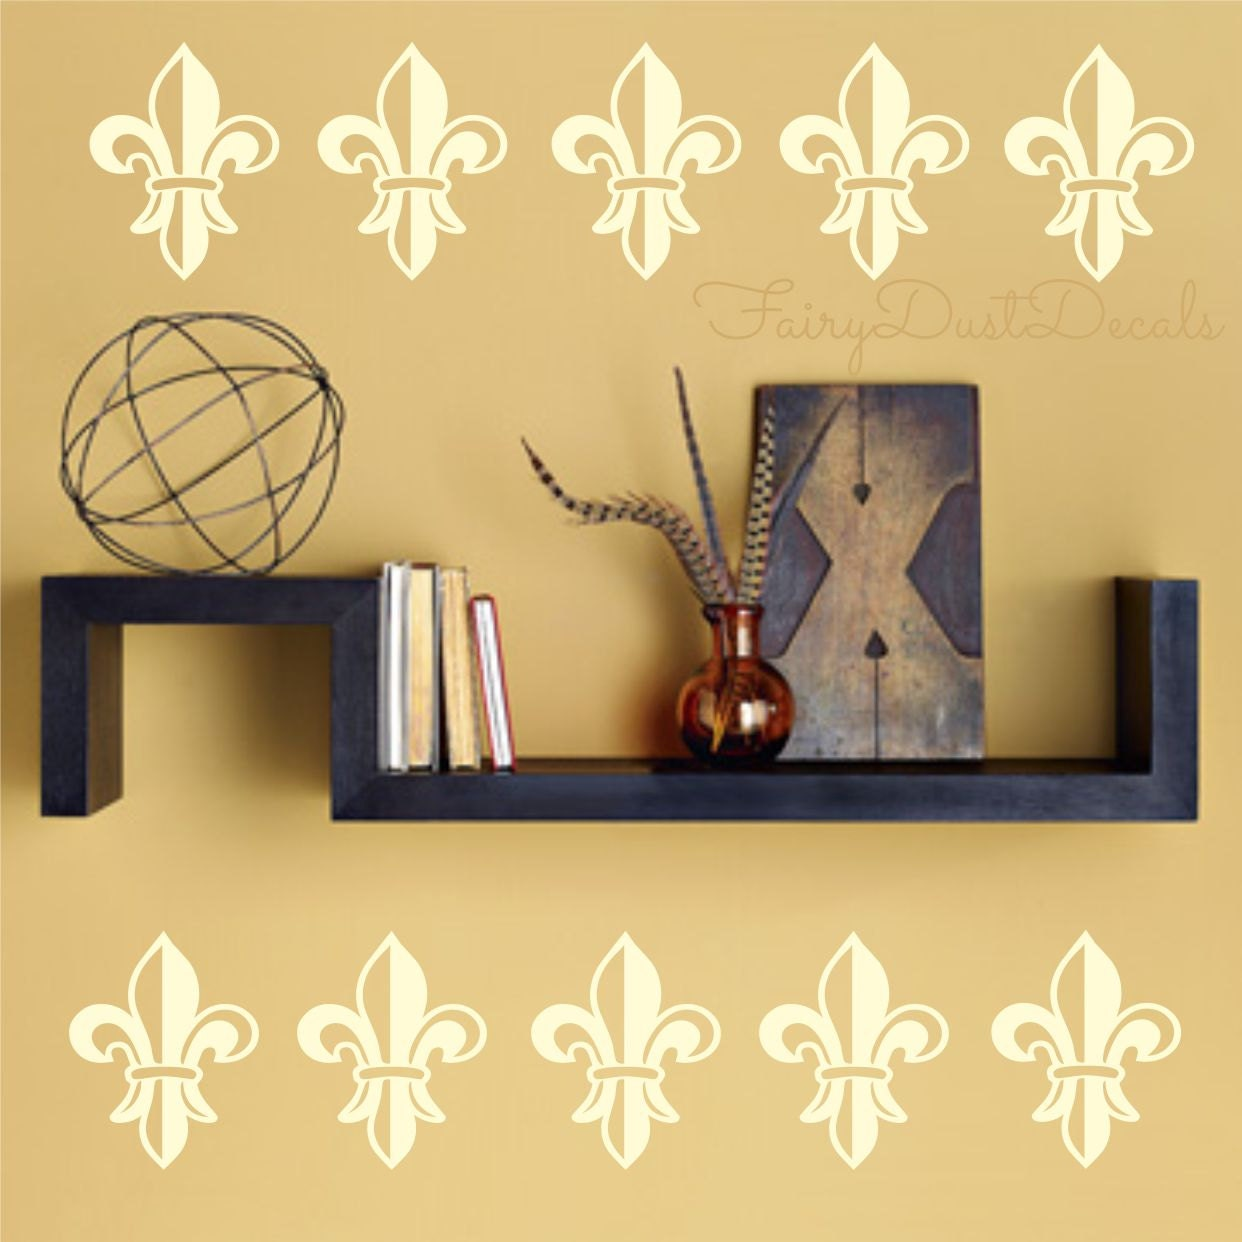 Wall Decal Flower French Fleur De Lis Wall Decals Set Of 16